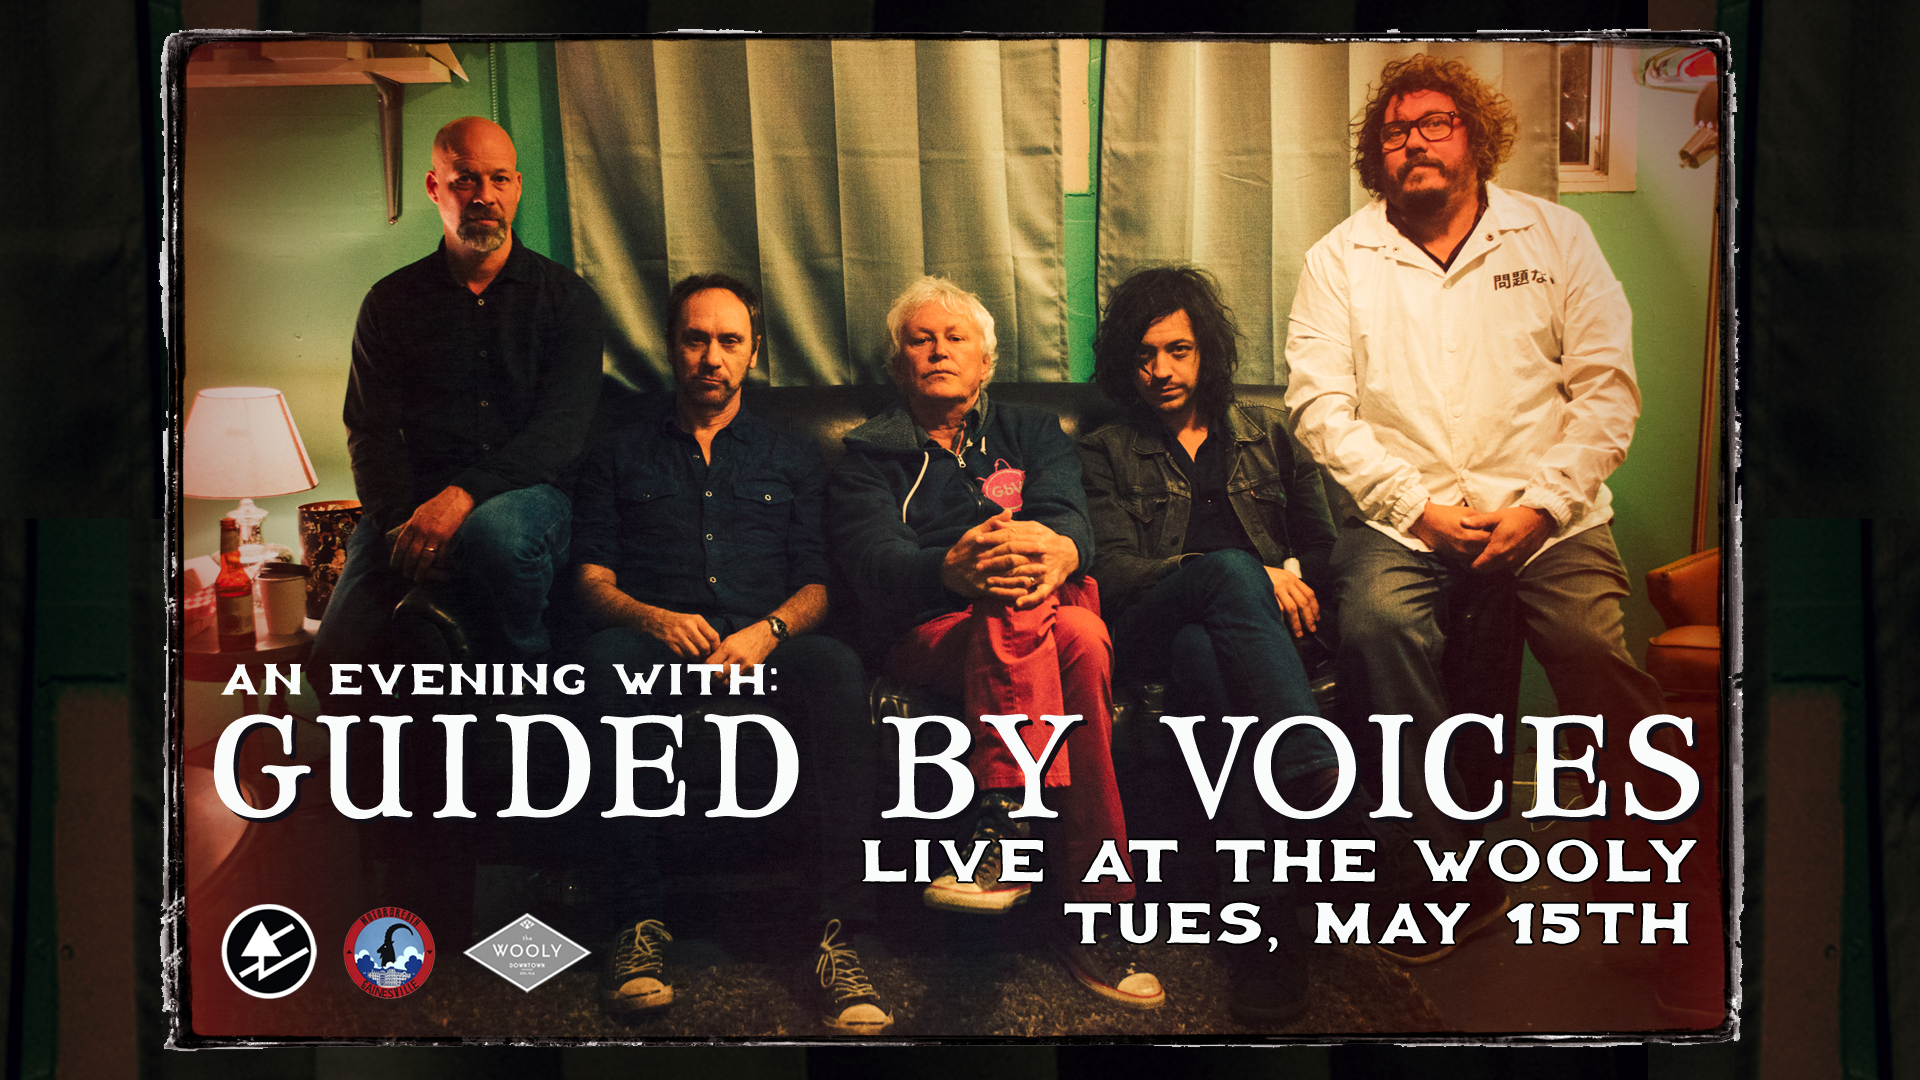 """Tuesday, May 15th  Motorbreath Presents:  An Evening With:   GUIDED BY VOICES   Doors at 7pm  $25adv/$30dos    Twenty-two years ago in 1994, 38-year-old school teacher Robert Pollard & his merry band recorded Bee Thousand in a Dayton, Ohio basement on a 4-track cassette recorder. This improbable rock classic became an enormously influential album; Spin and Pitchfork have called it one of the best records of the '90s, and Amazon picked Bee Thousand as #1 on their list of the 100 Greatest Indie Rock Albums Of All Time. An amazing live band with a rabid following, the Washington Post called GBV """"the Grateful Dead equivalent for people who like Miller Lite instead of acid!""""  GBV's new line-up re-unites Robert Pollard with former bandmembers Doug Gillard and Kevin March, along with exciting newcomers Mark Shue and Bobby Bare Jr. The group has been wowing audiences from coast to coast following fantastic new albums How Do You Spell Heaven and August By Cake (Robert Pollard's 100th release!)"""